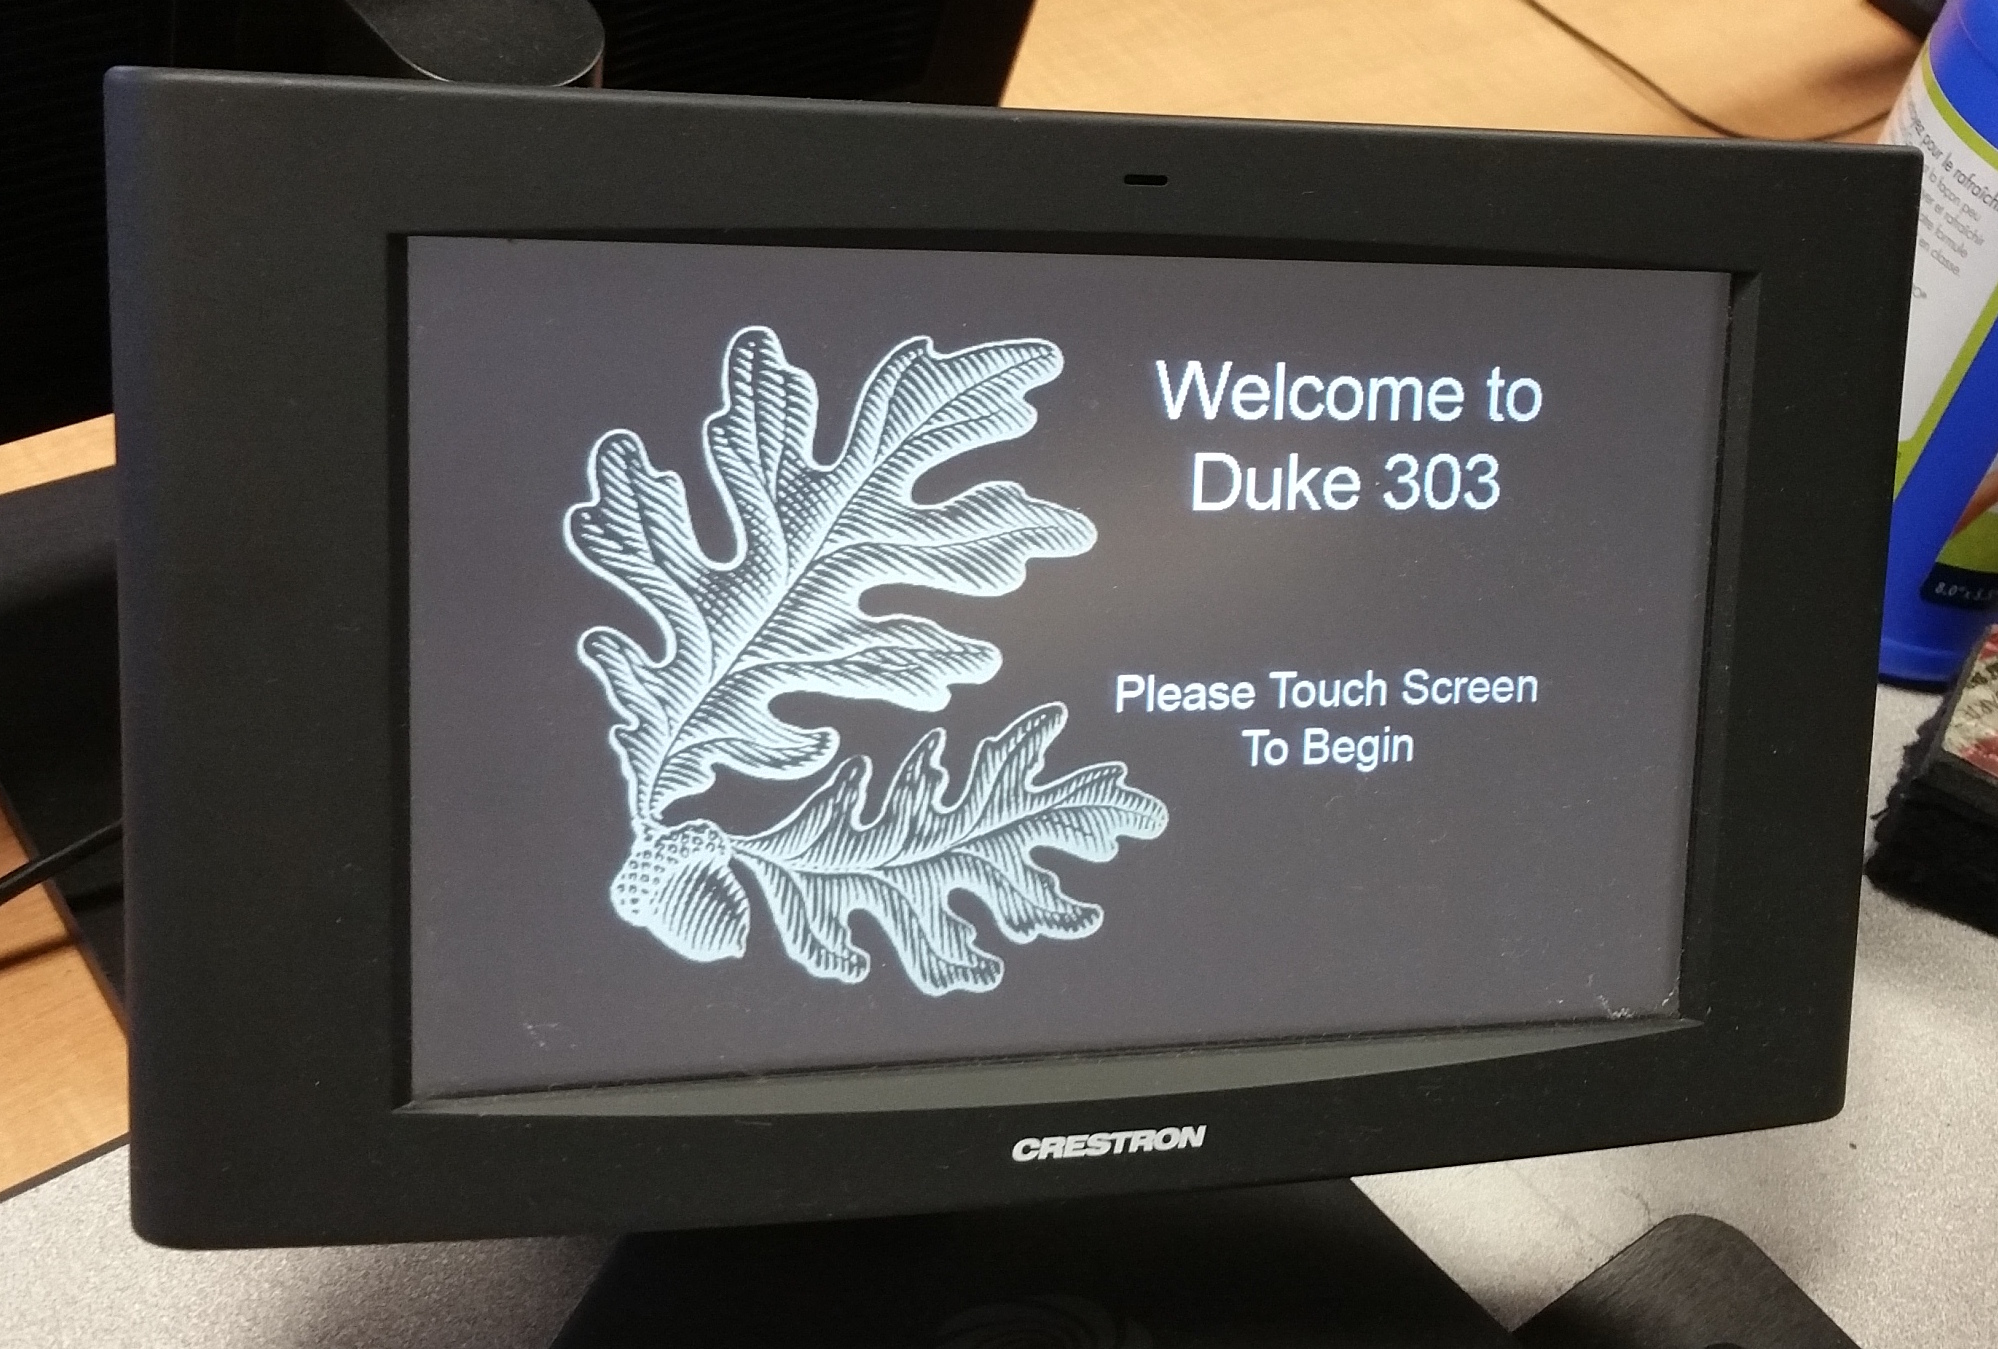 Photo of crestron control touch panel initial screen with instructions to touch screen to begin